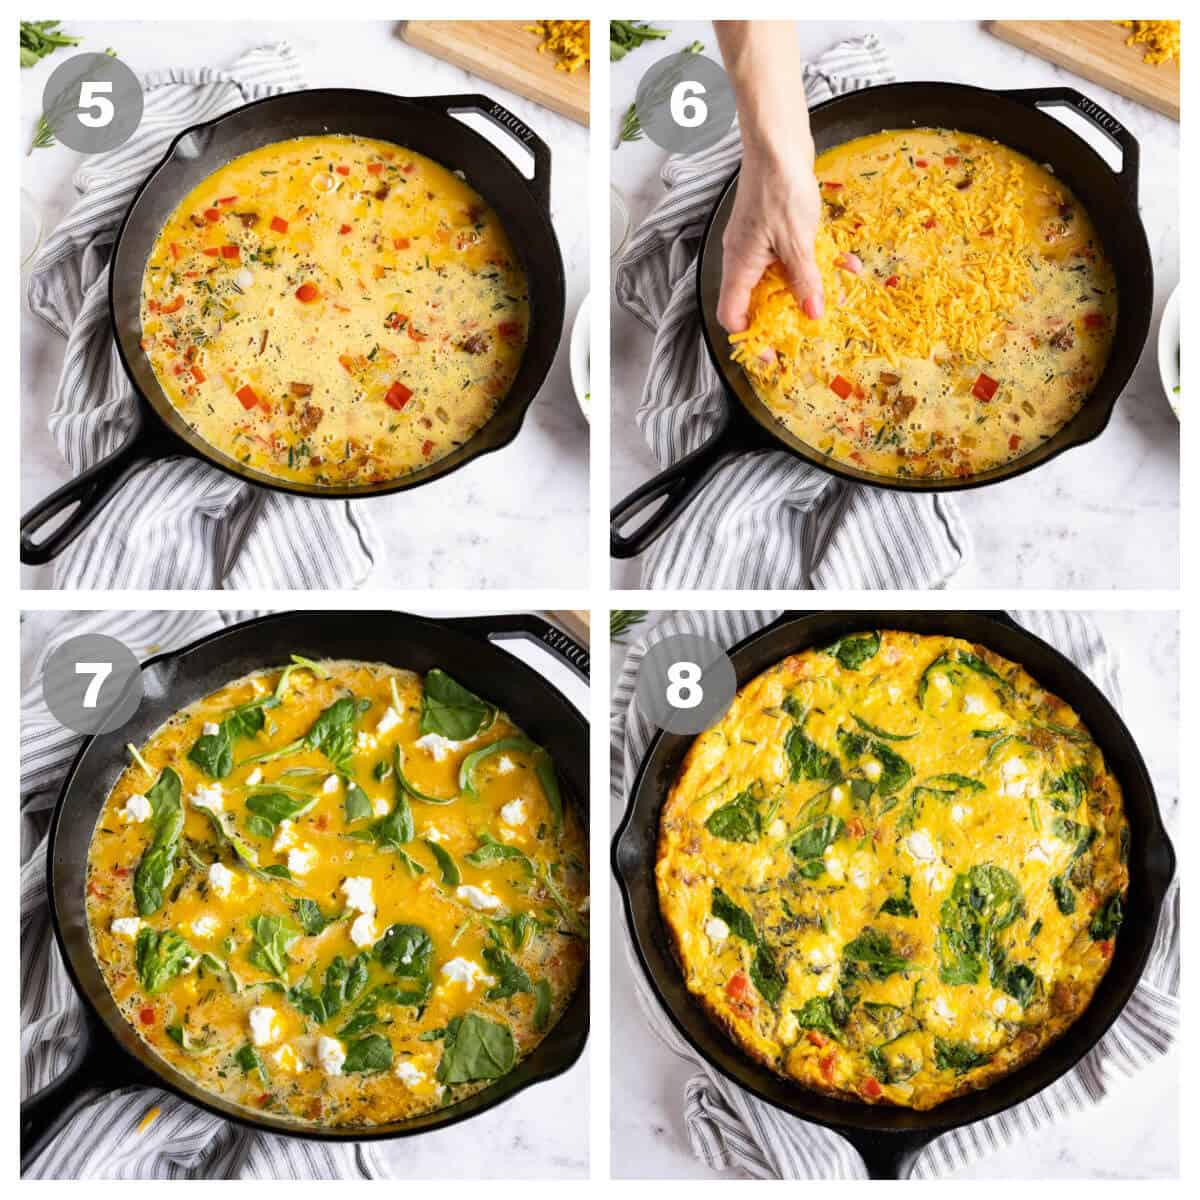 collage of 4 photos showing steps 5-8 of making a frittata